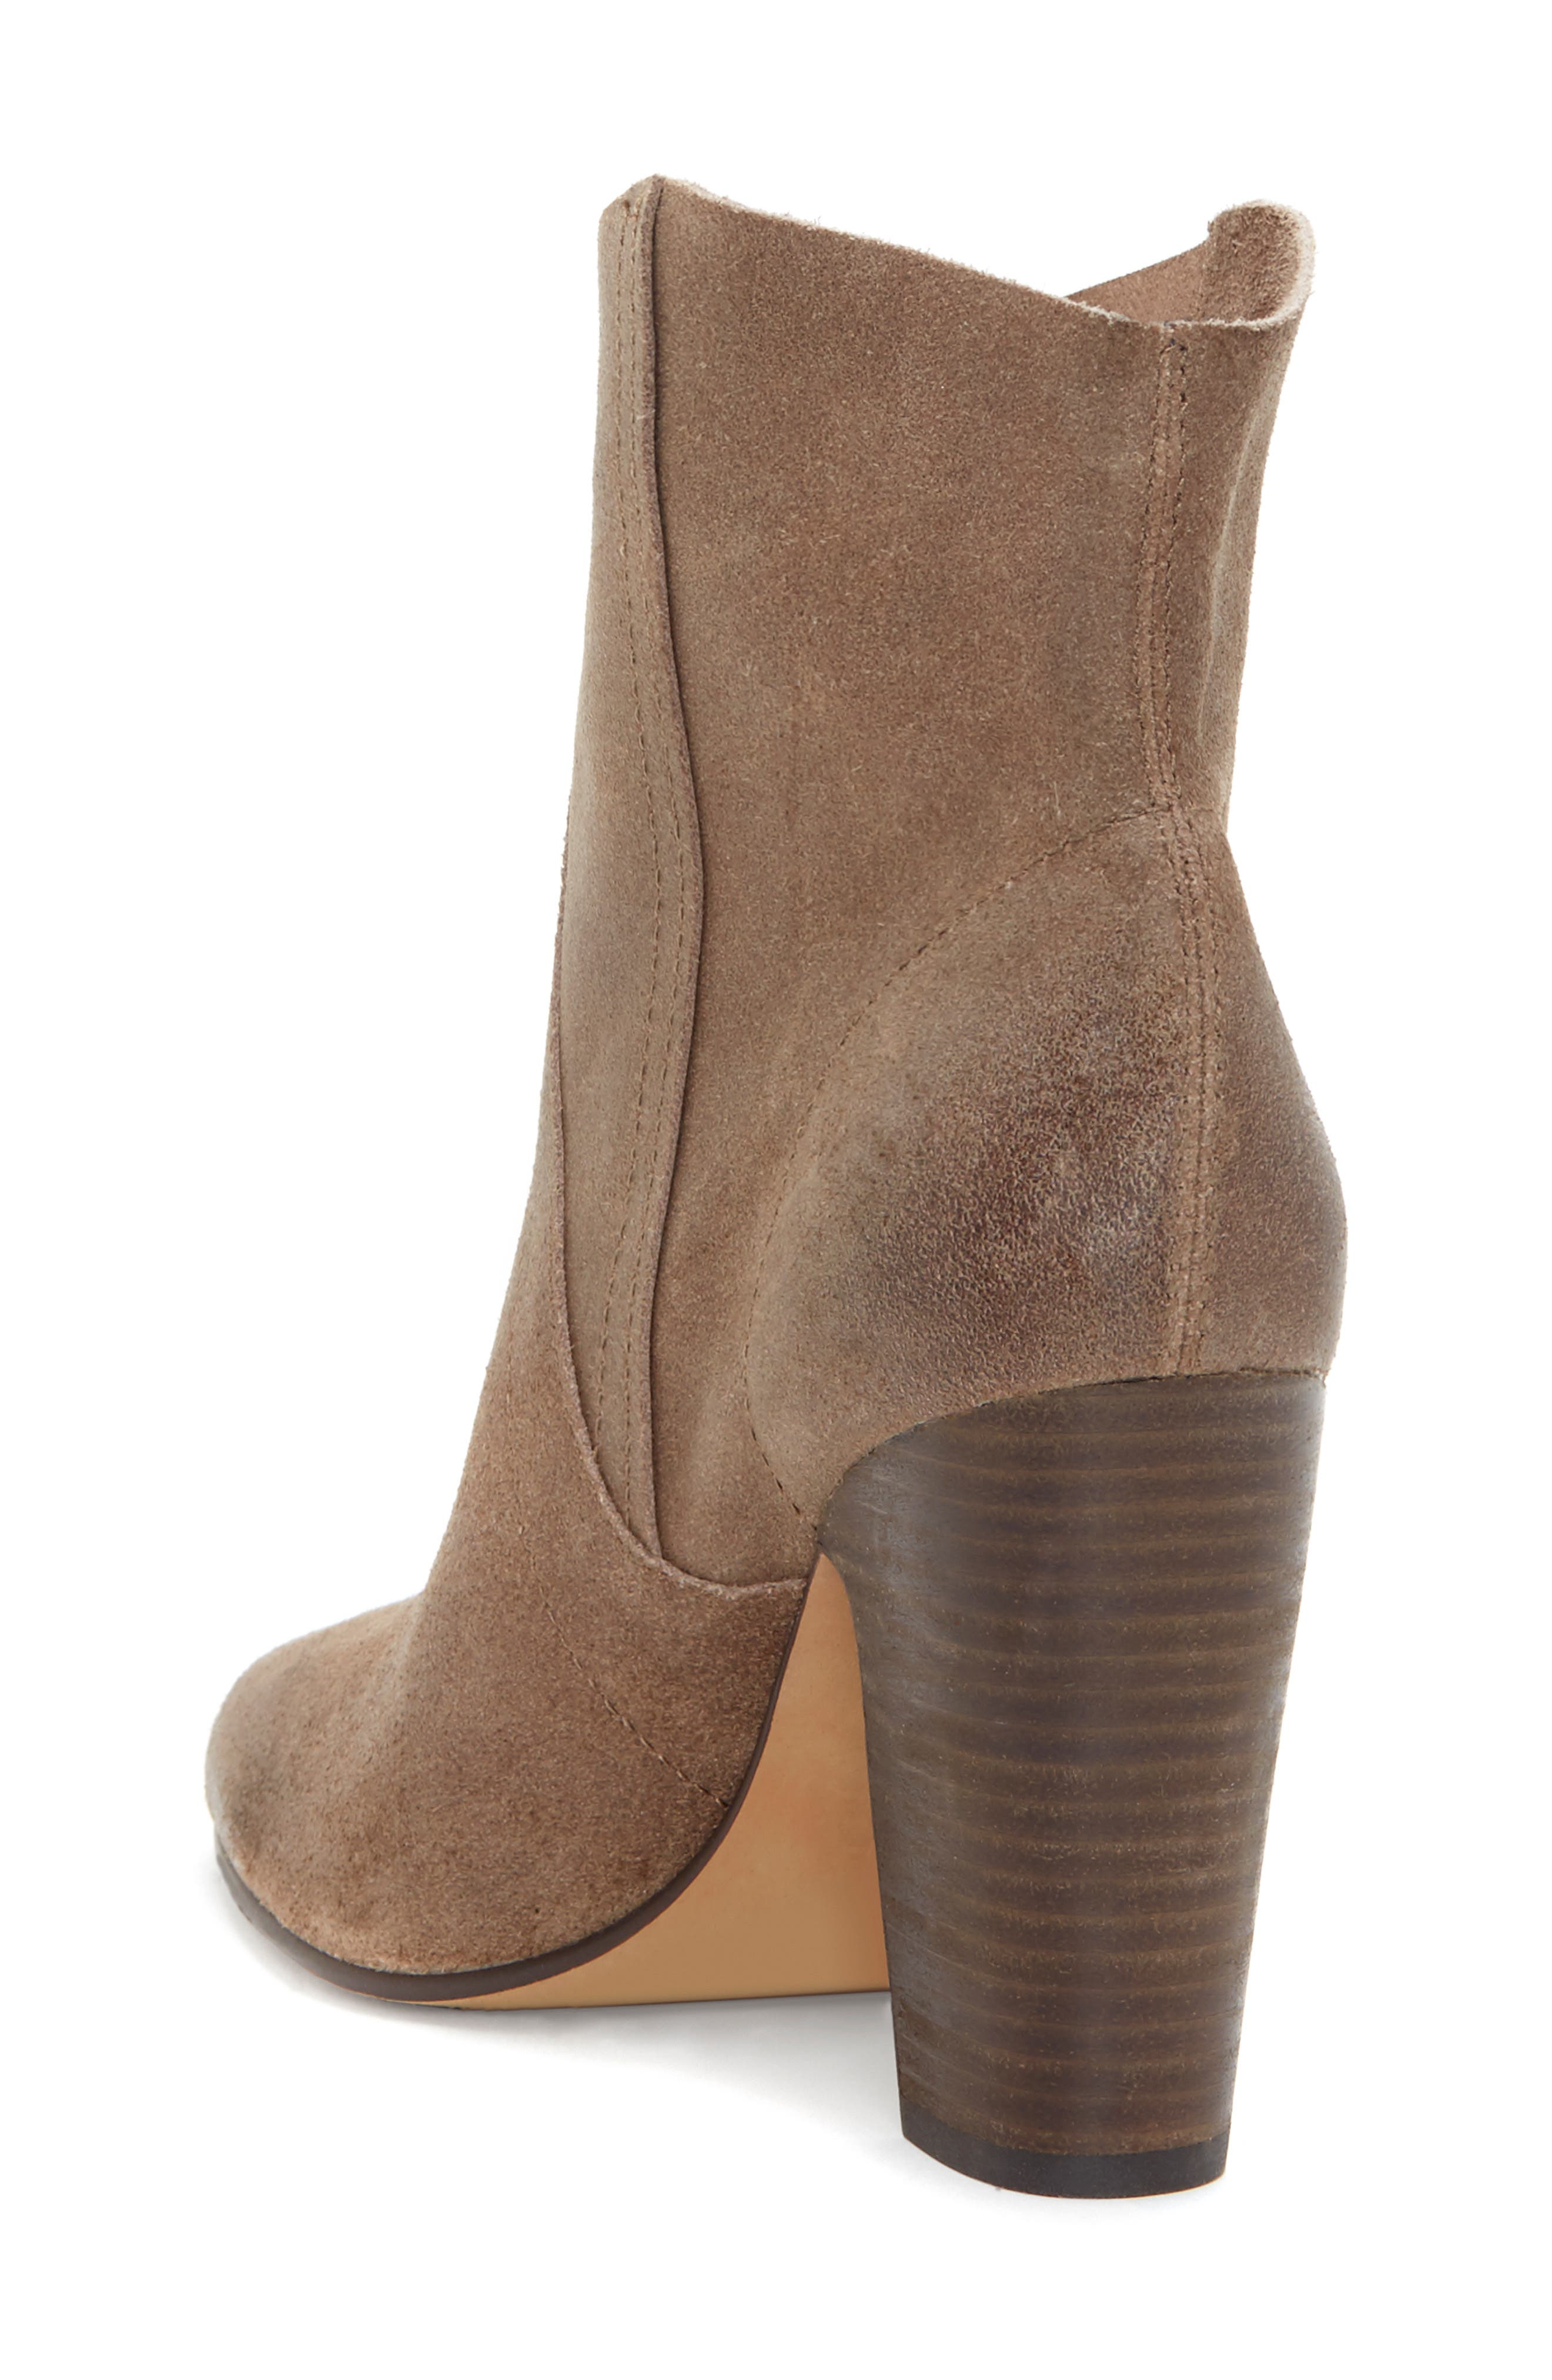 VINCE CAMUTO, Creestal Western Bootie, Alternate thumbnail 2, color, BEDROCK LEATHER